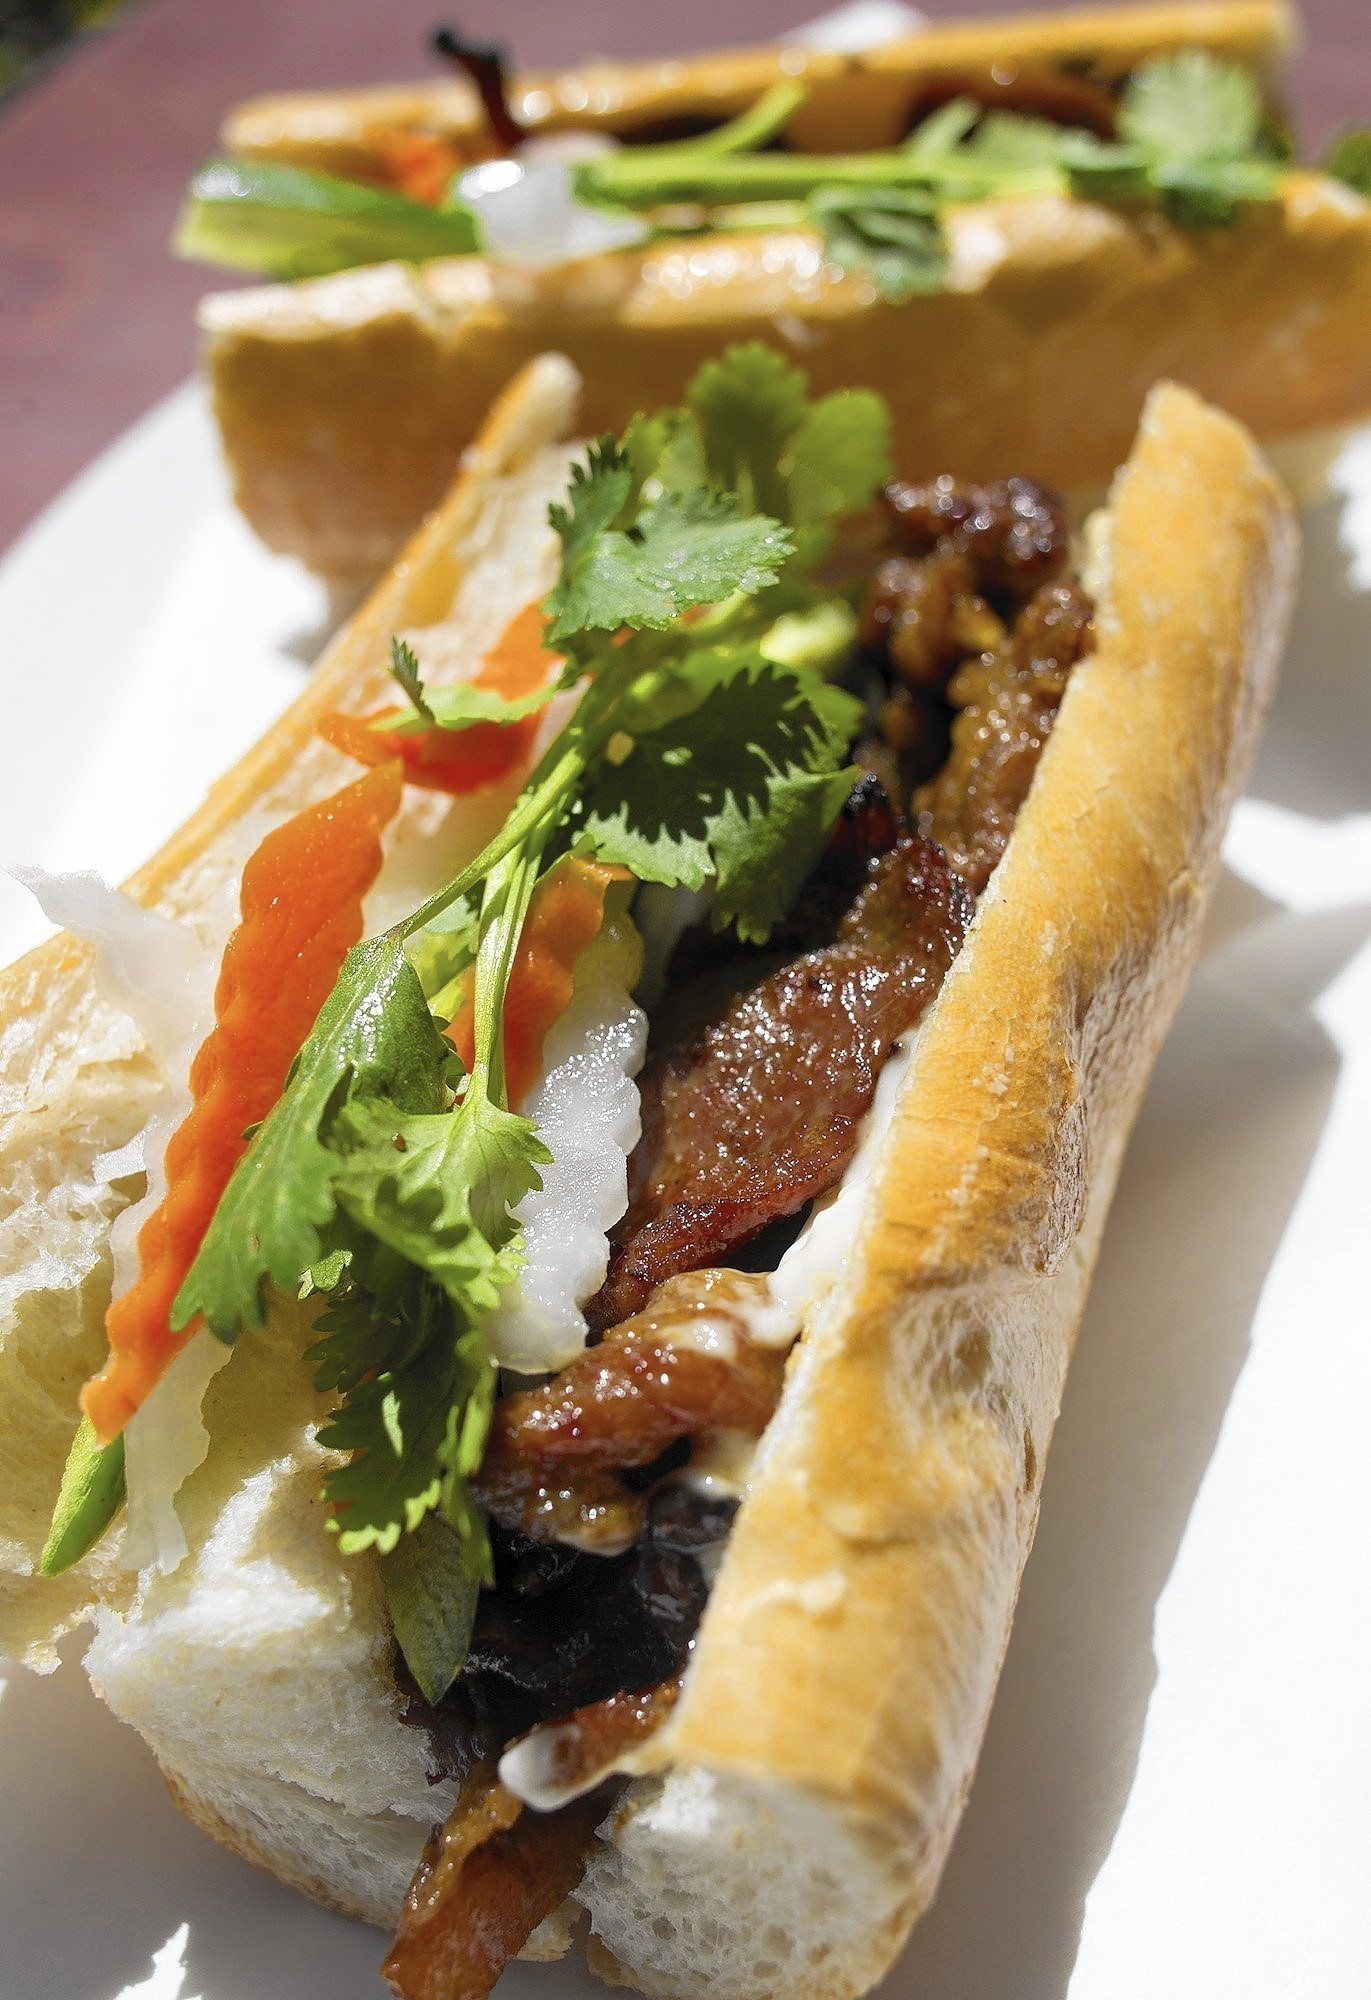 The Gossiping Gourmet: Lotus Bistro offers tasty Vietnamese fare in a casual setting